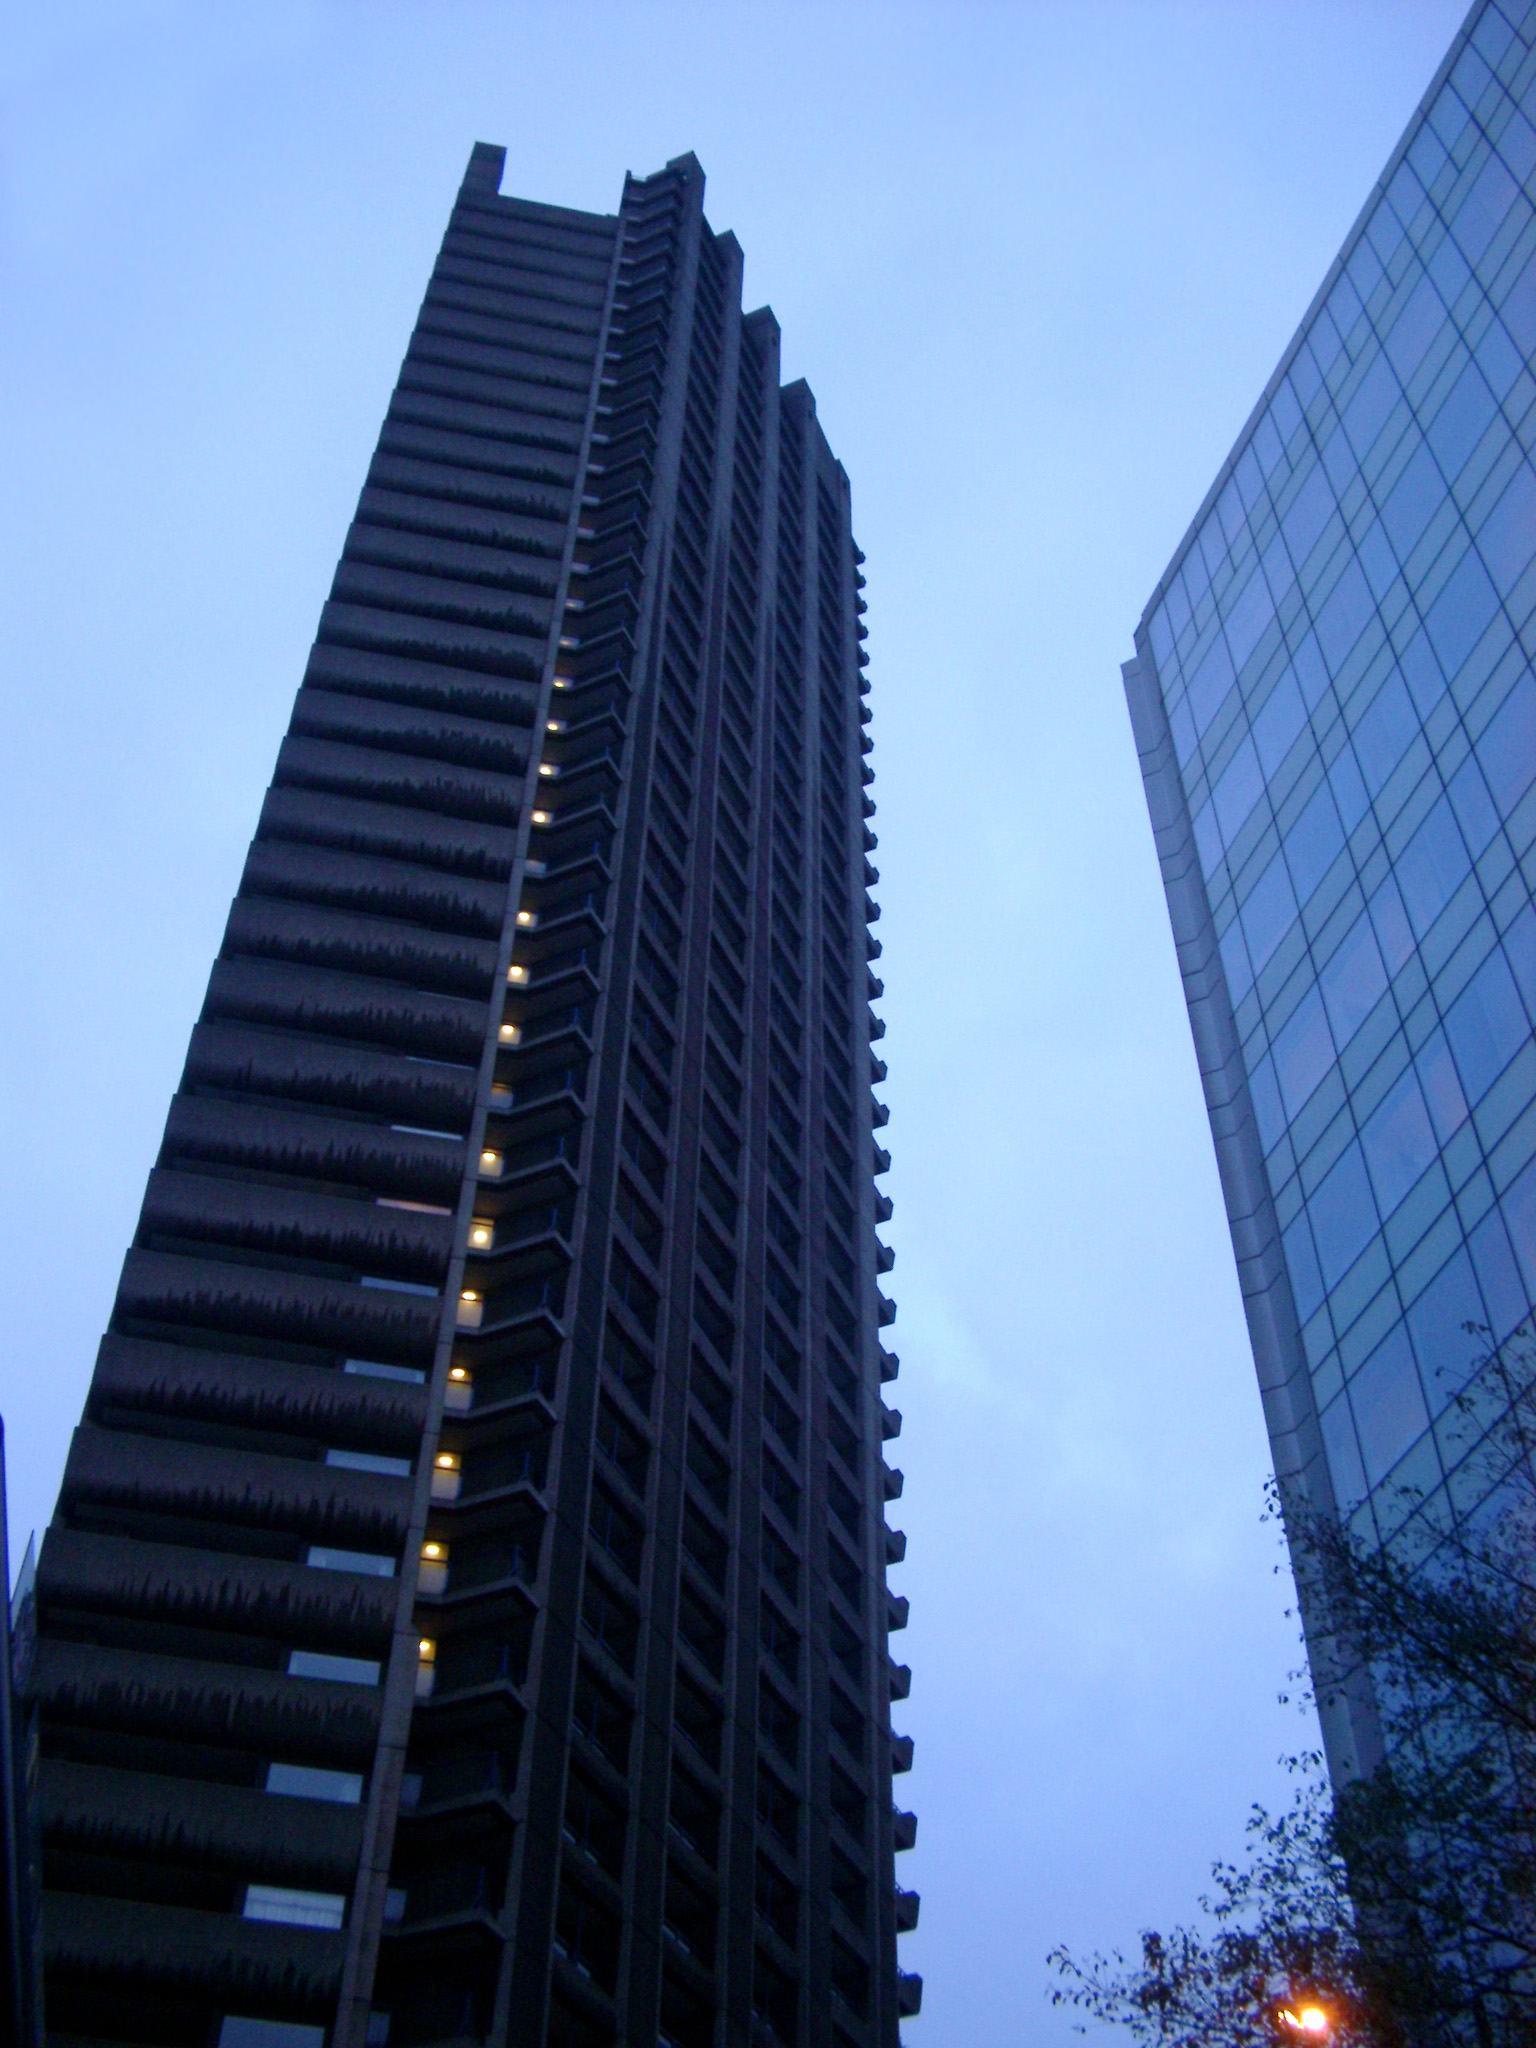 Bruralist Architecture, the Towers of Barbican Estate, a Residential Estate in the City of London. Captured from Lower Angle Point with Light Blue Sky Background.